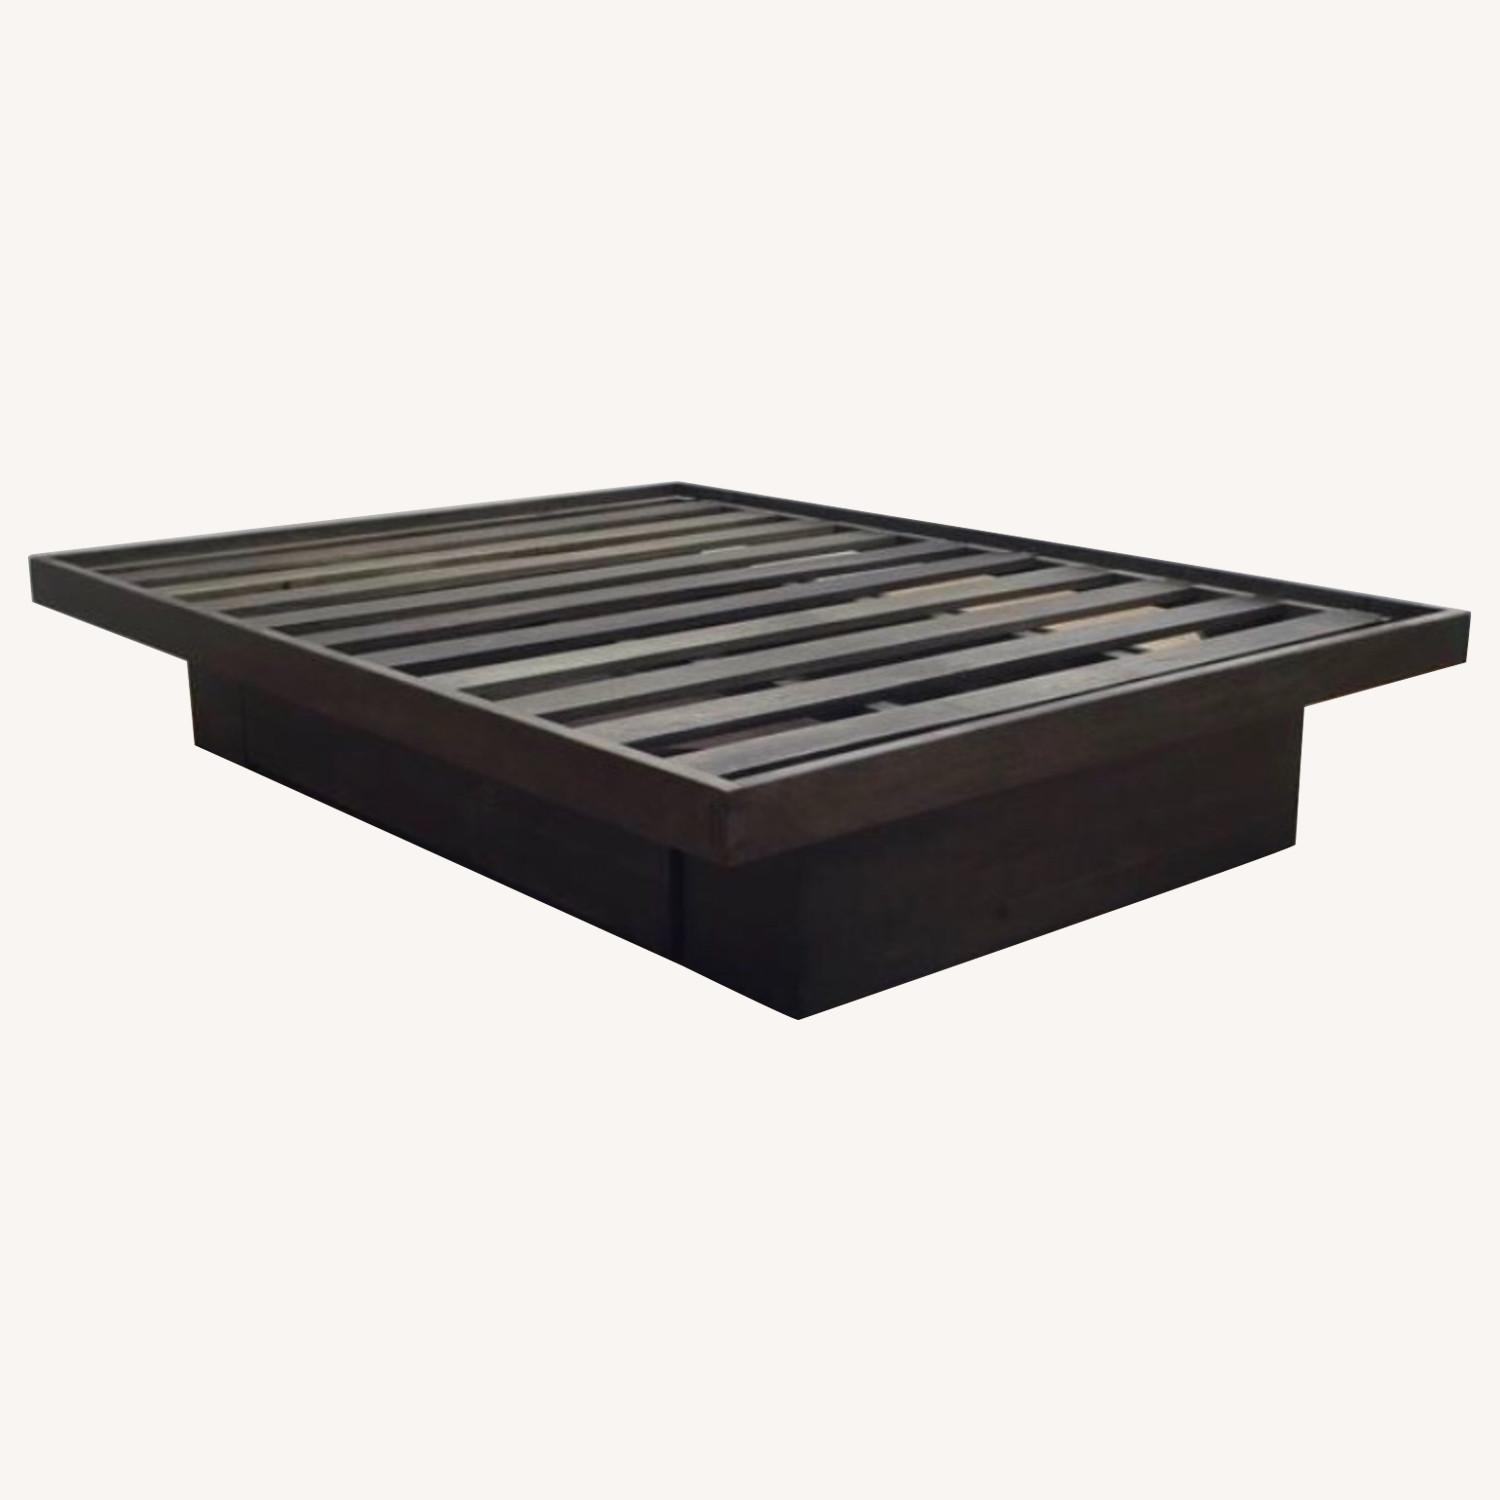 From The Source King Size Platform Storage Bed